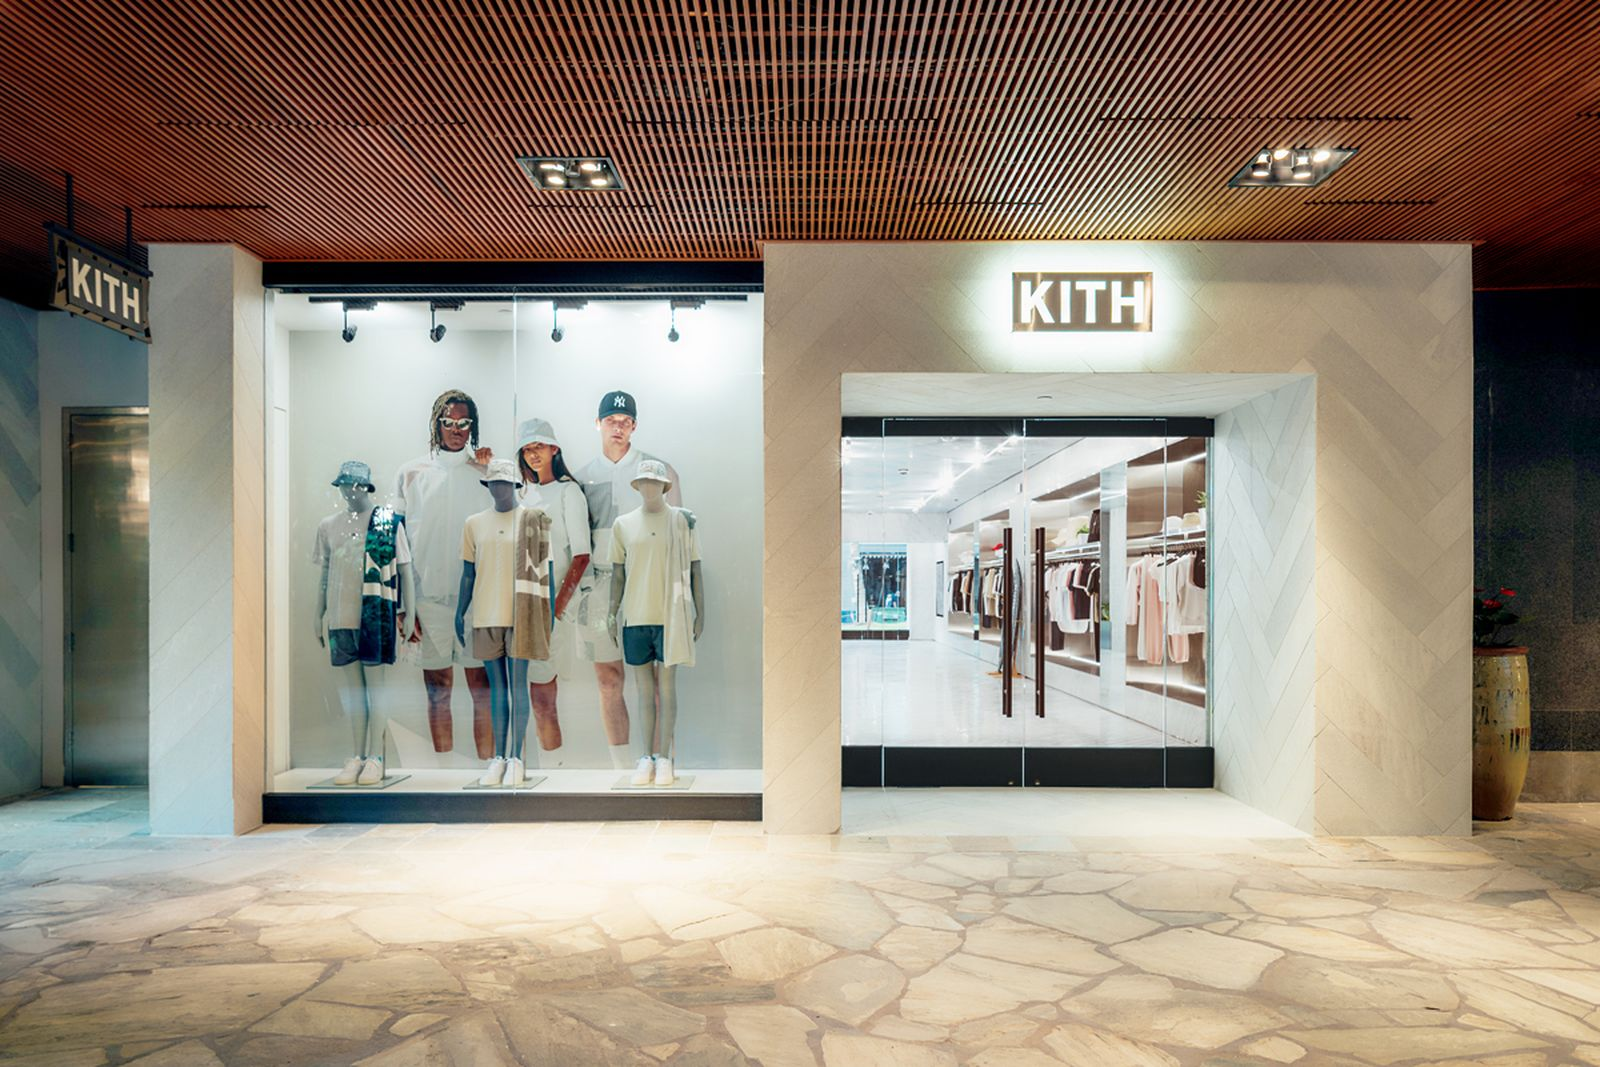 kith-hawaii-store-inside-air-force-1 (19)